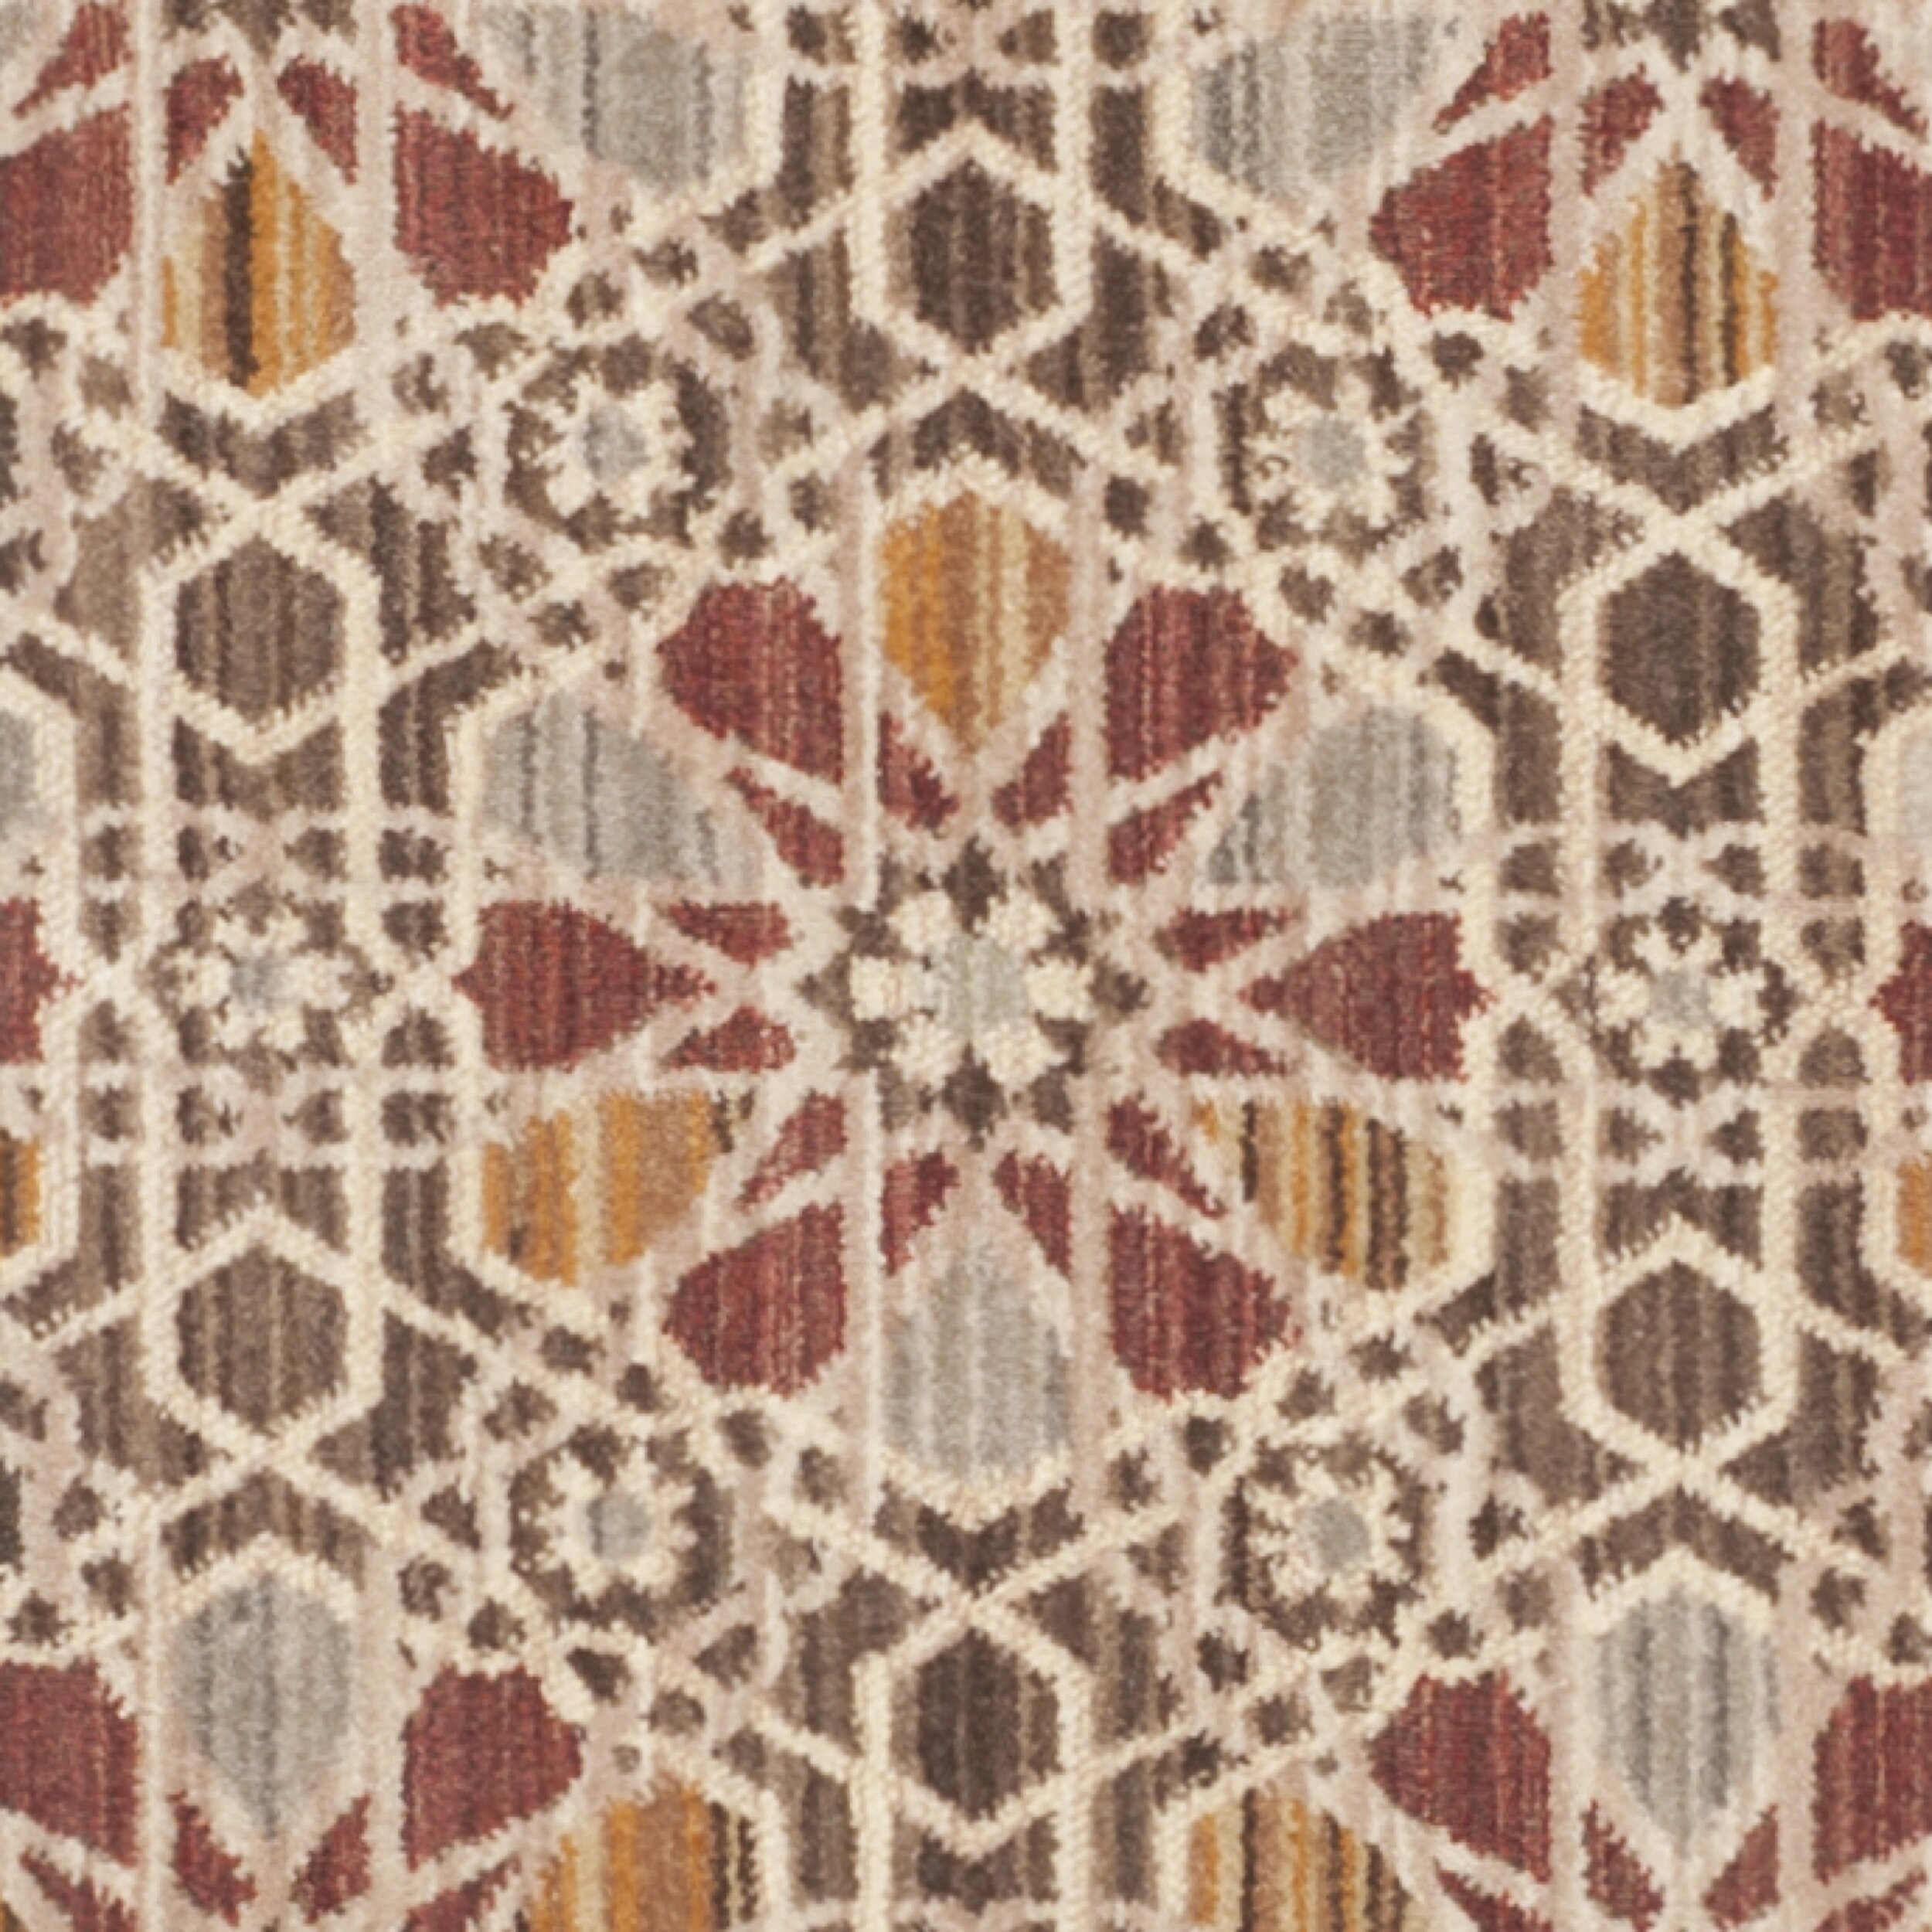 Safavieh Infinity Brown Beige Area Rug Wayfair